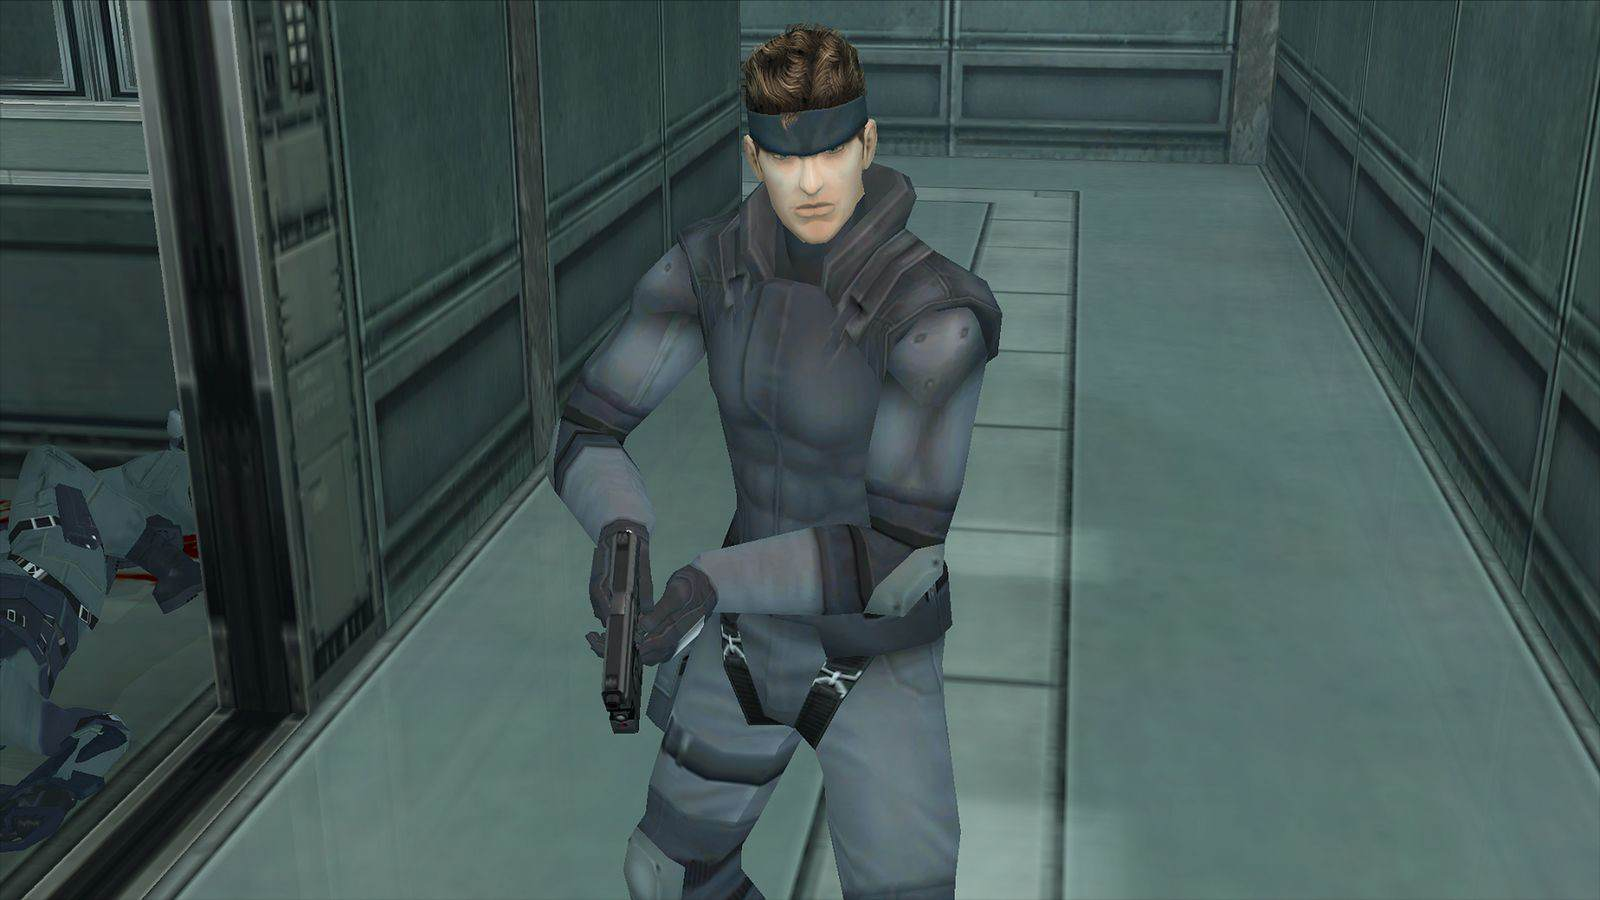 Fans Make Metal Gear VR App With Original Snake Voice Actor mgs 01